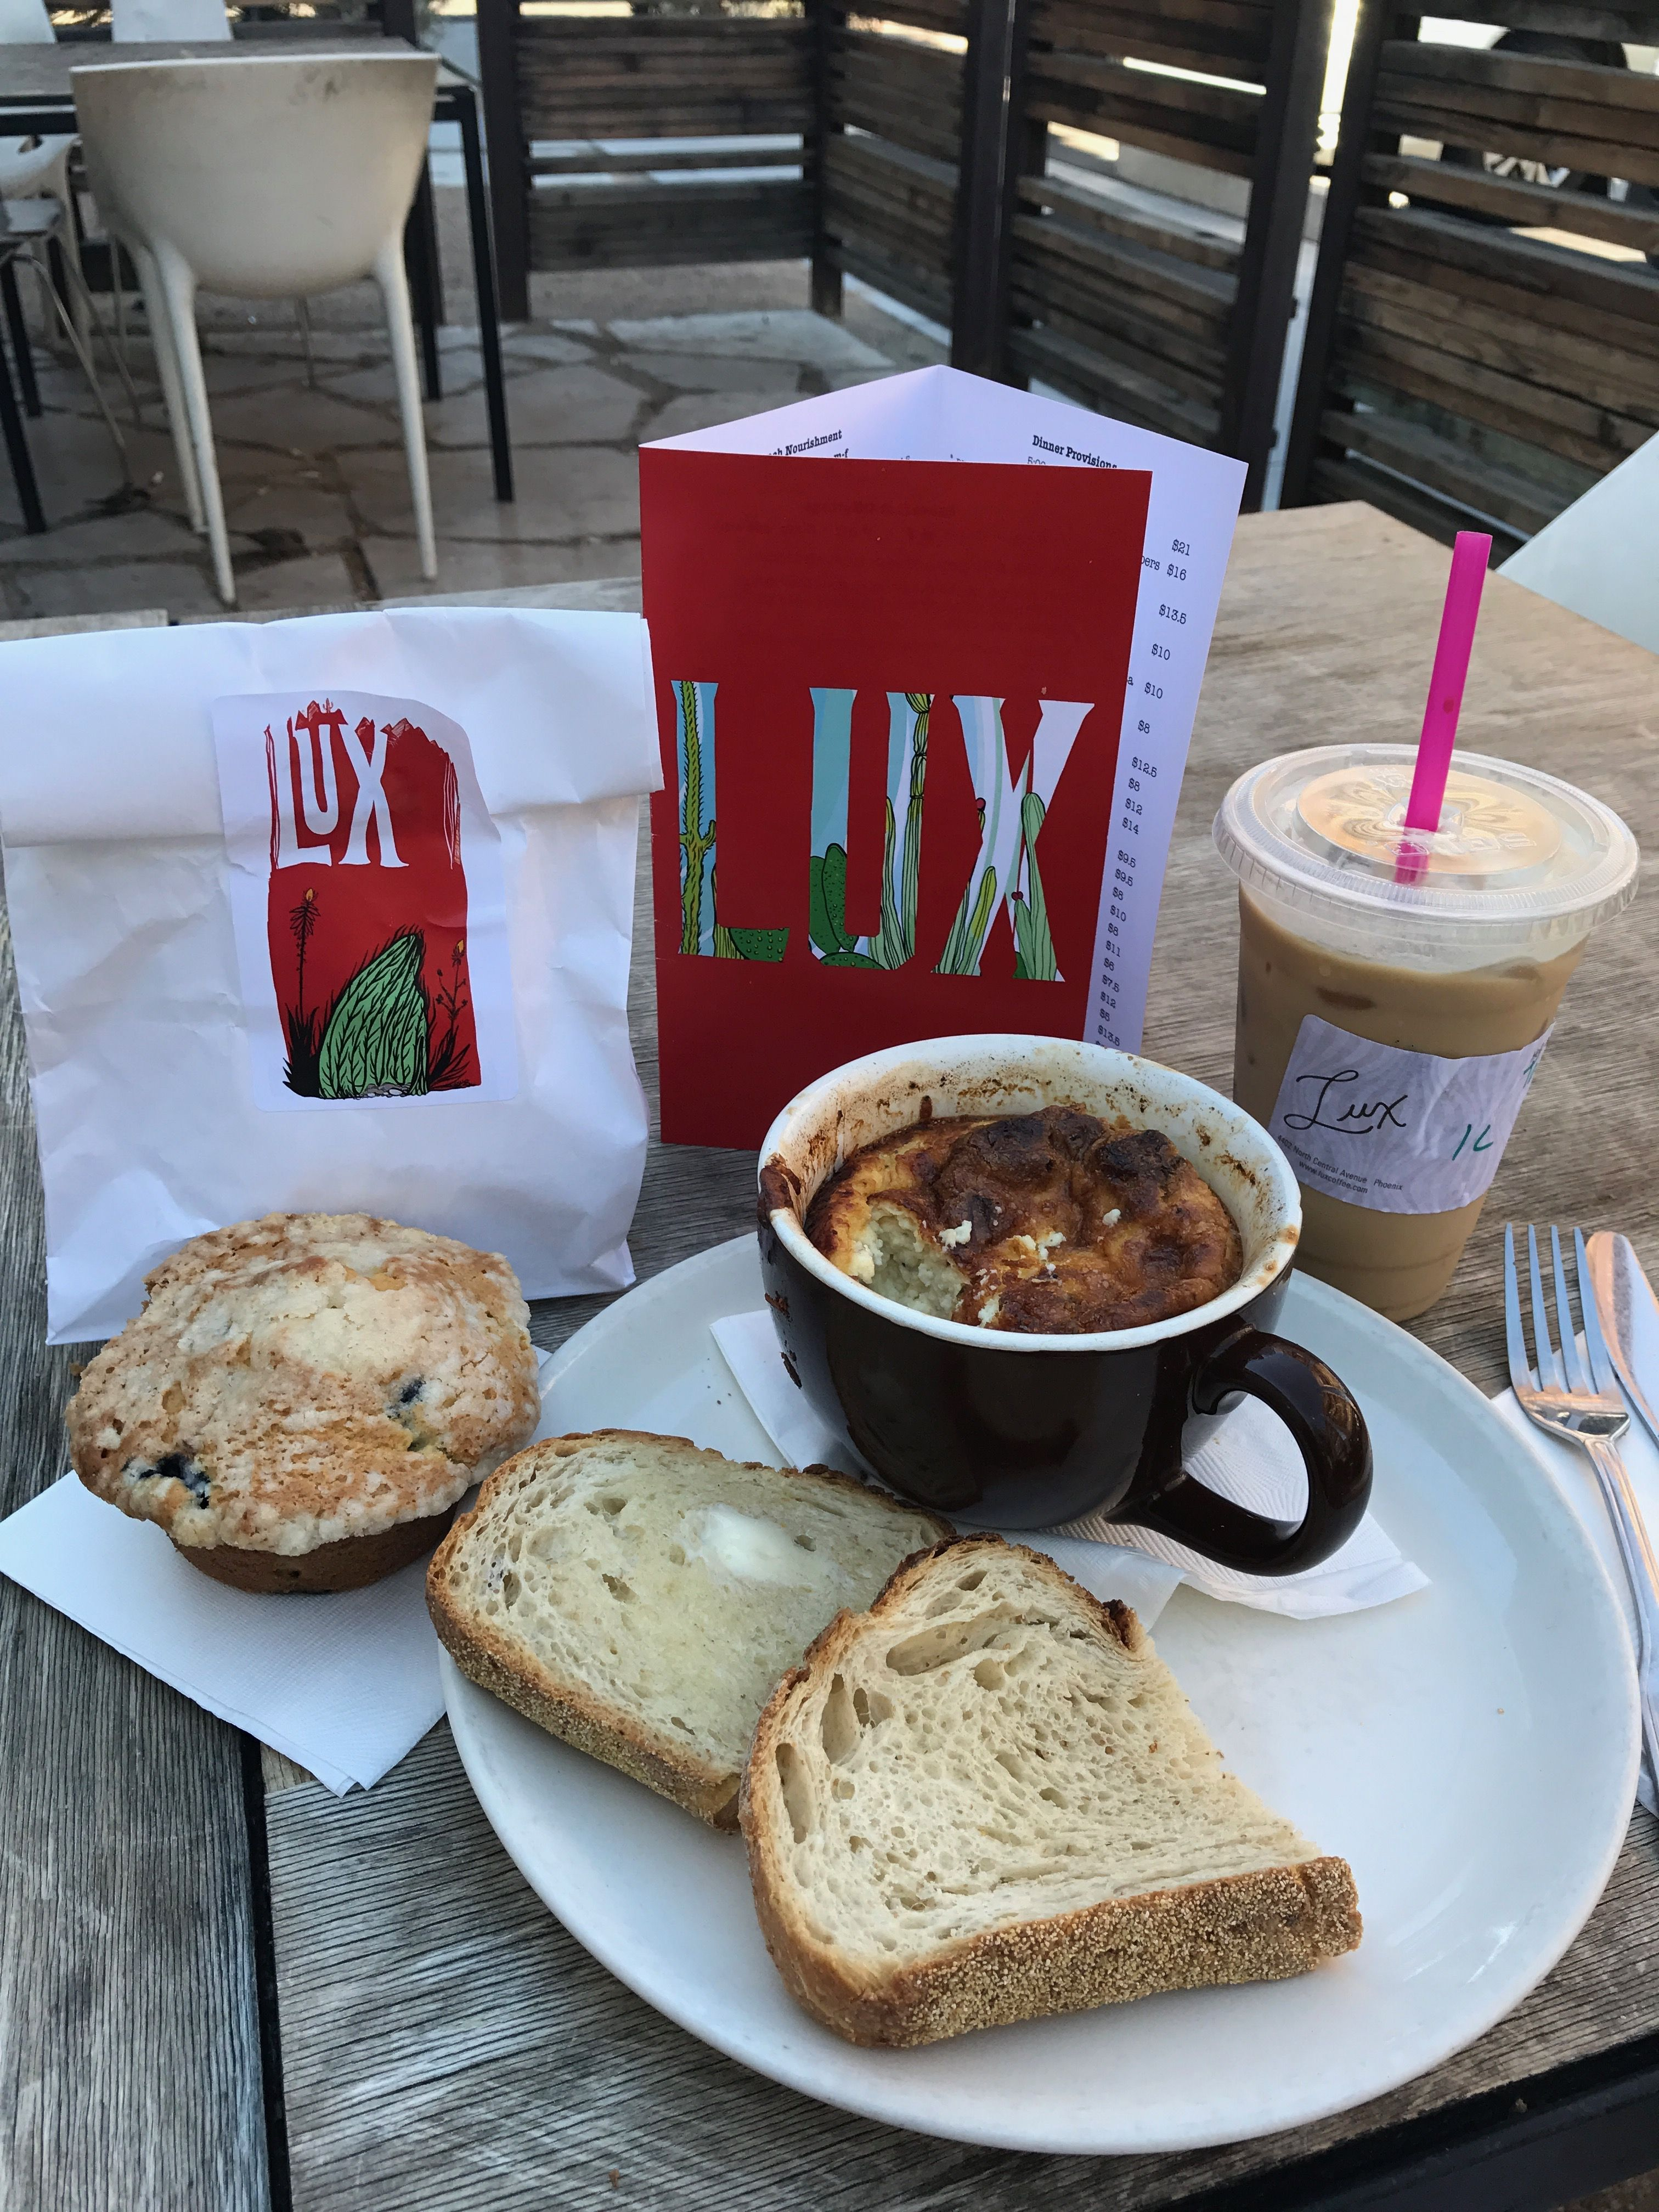 LUX Central Ask for a large iced coffee with a dollop of